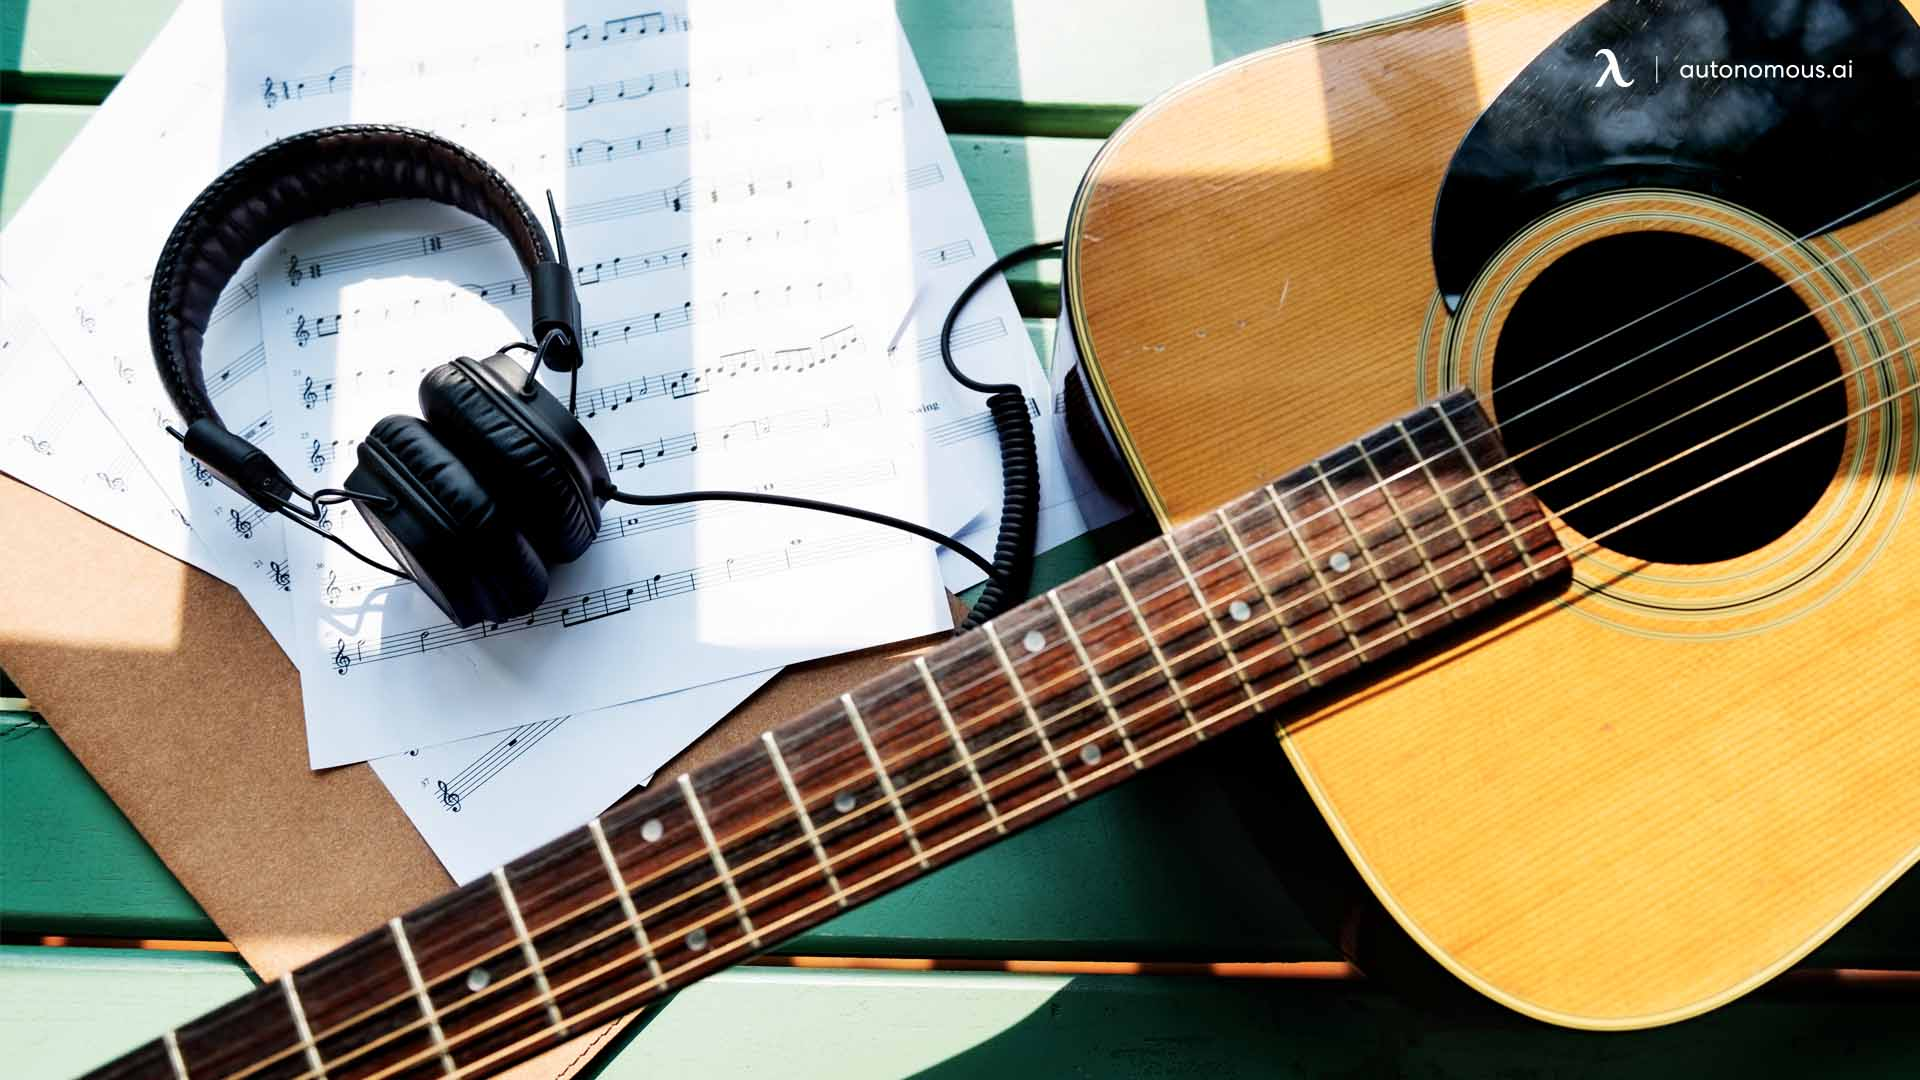 Research Show That Music Can Help You Reduce Stress While Doing Regular Activities